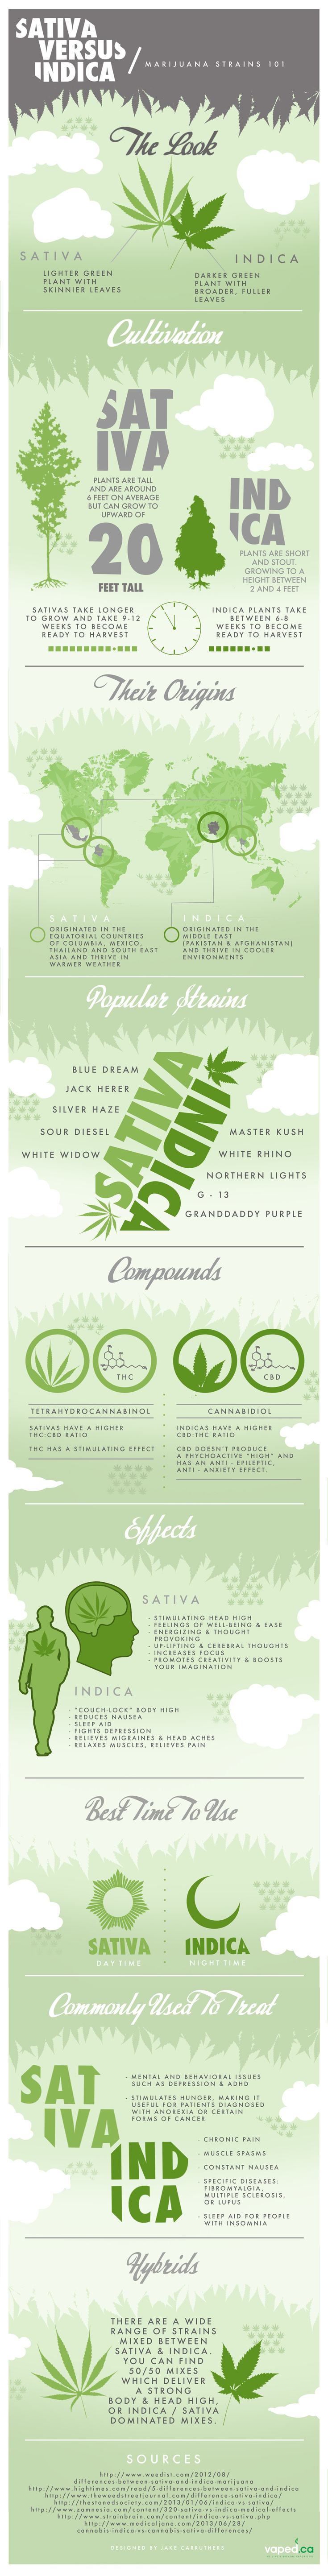 Indica vs. Sativa Infographic